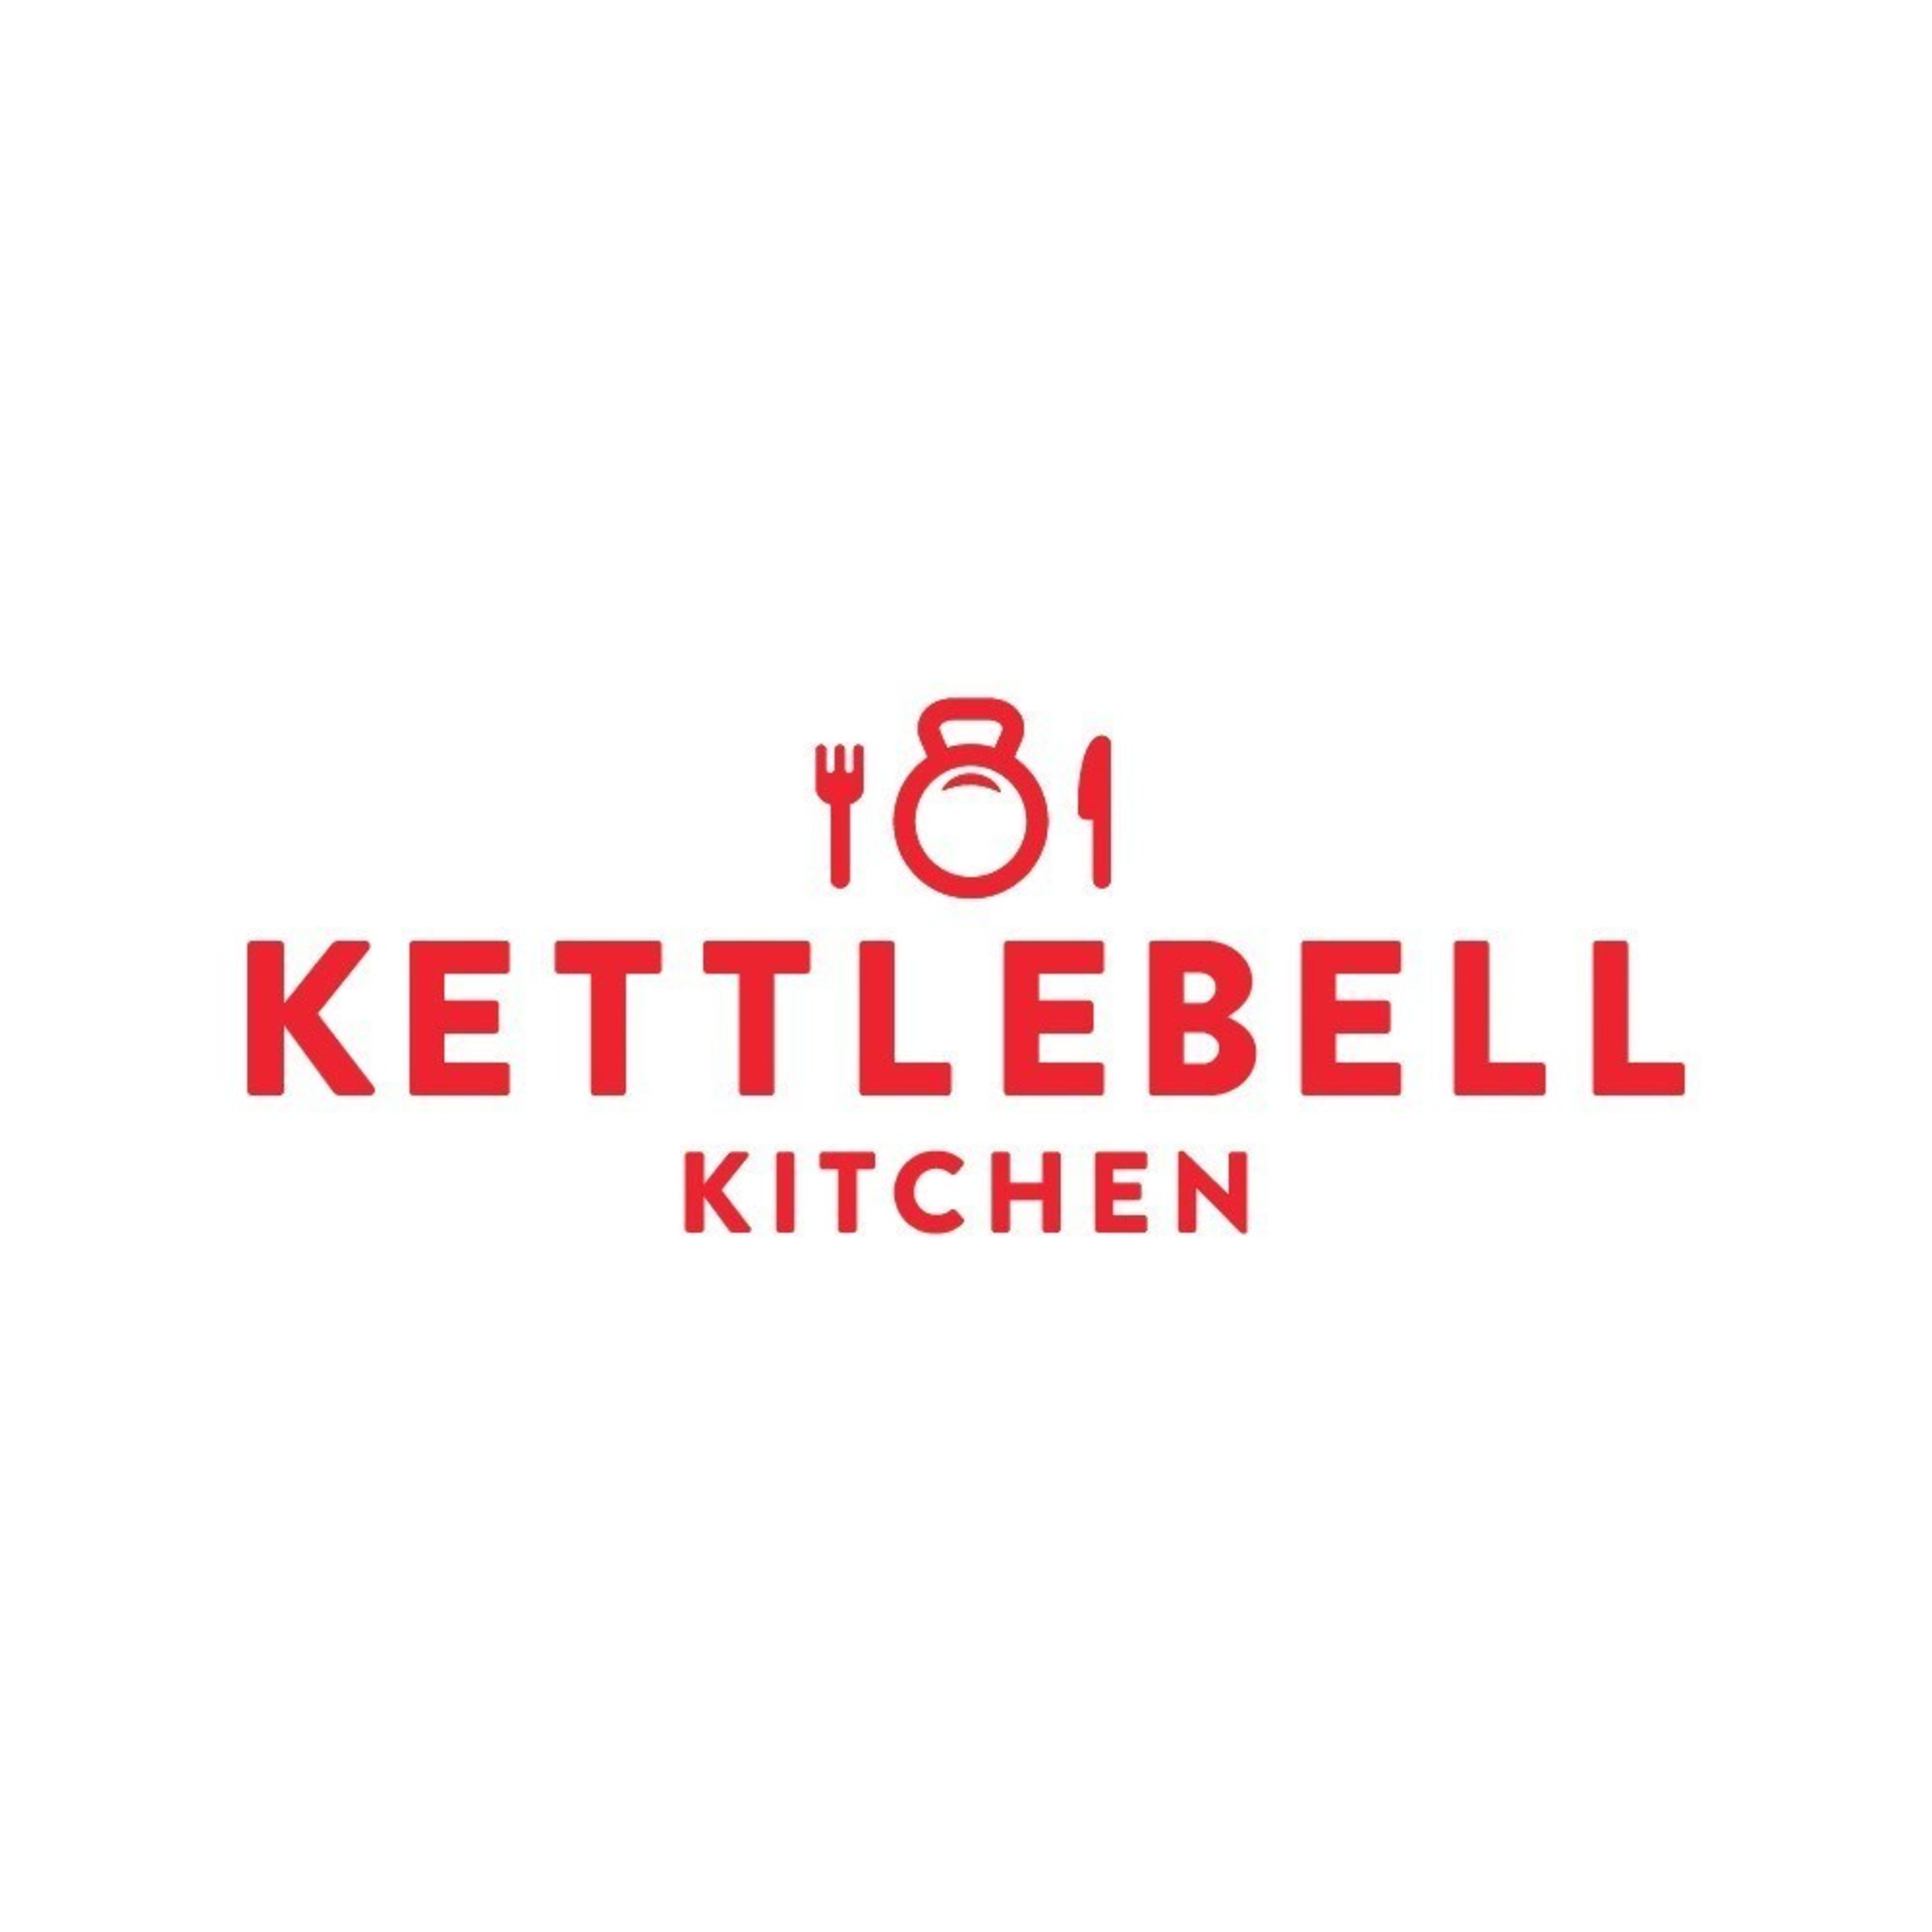 Kettlebell Kitchen Launches Home Delivery